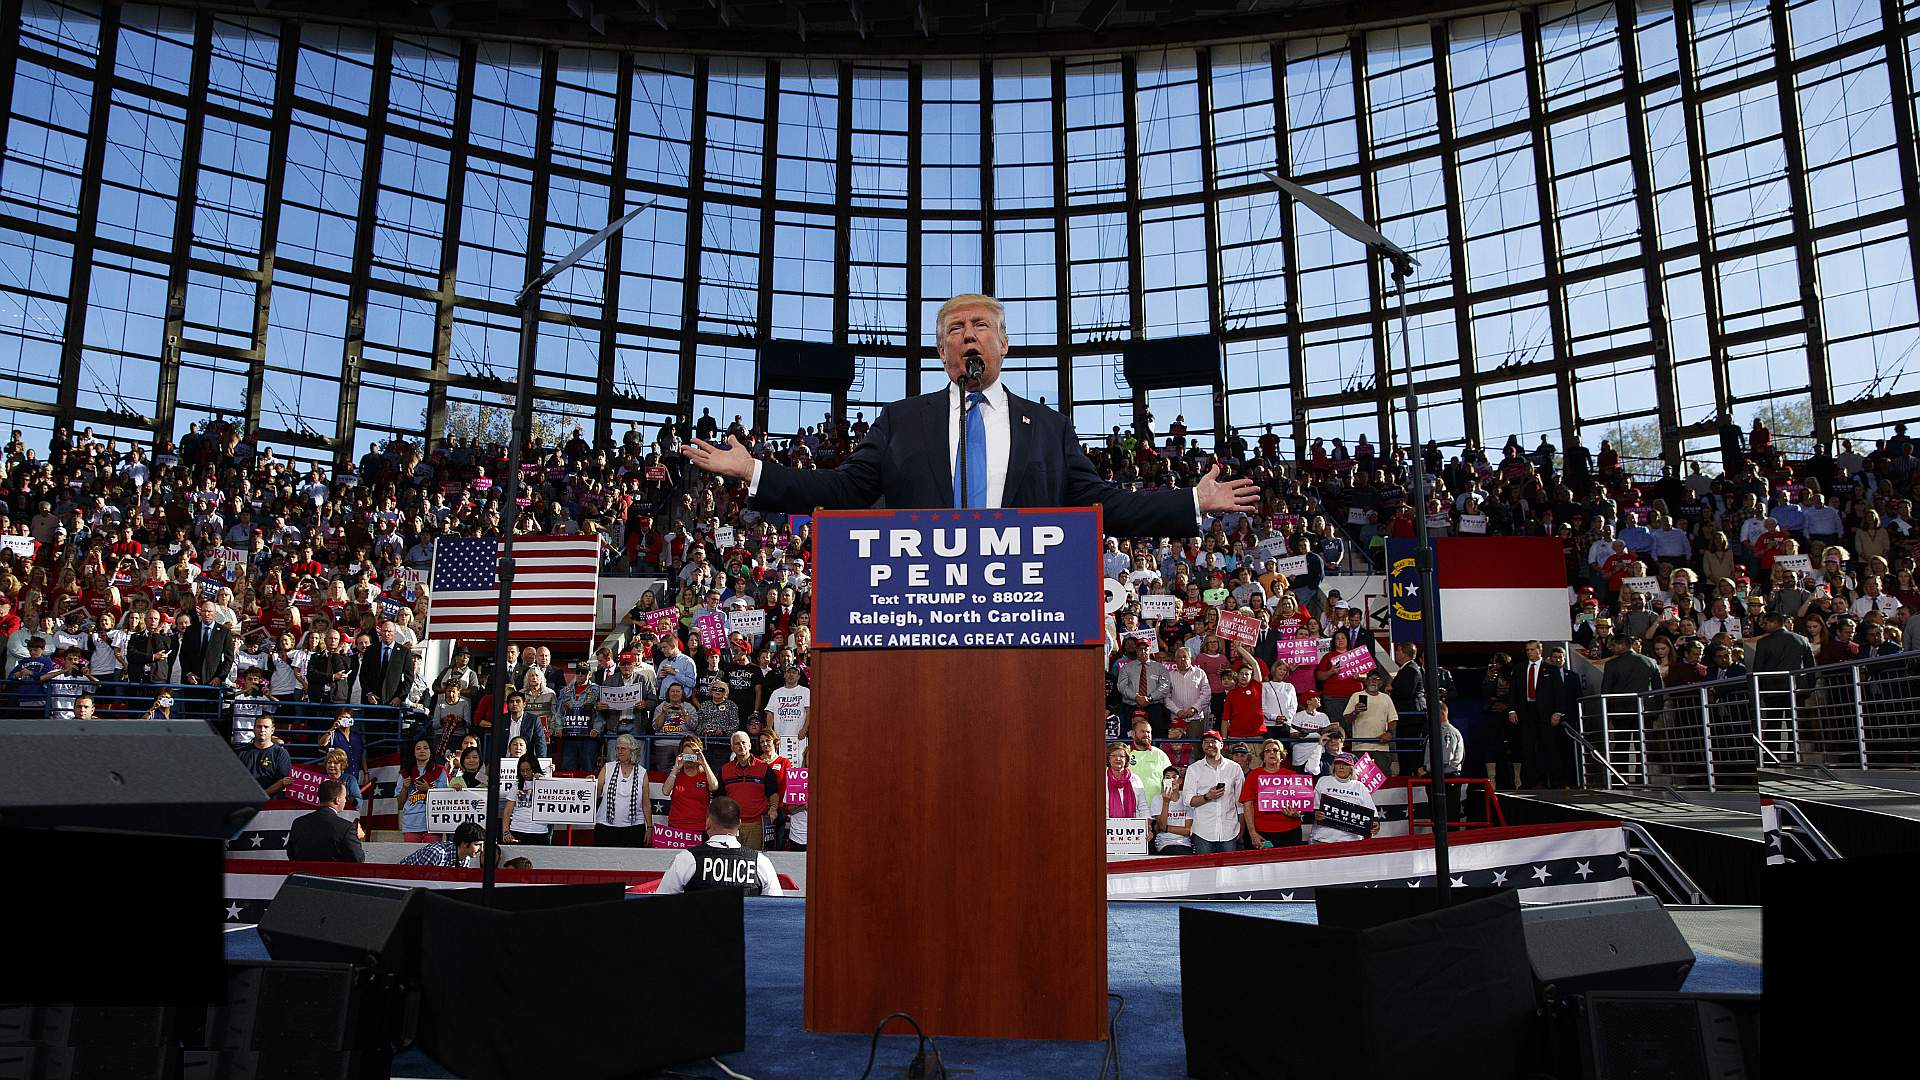 President Trump has a huge rally in Raleigh, South Carolina, he is standing at a podium facing the camera arms spread wide the crowd behind him is going wild they are seated in front of a giant glass wall, it looks awesome